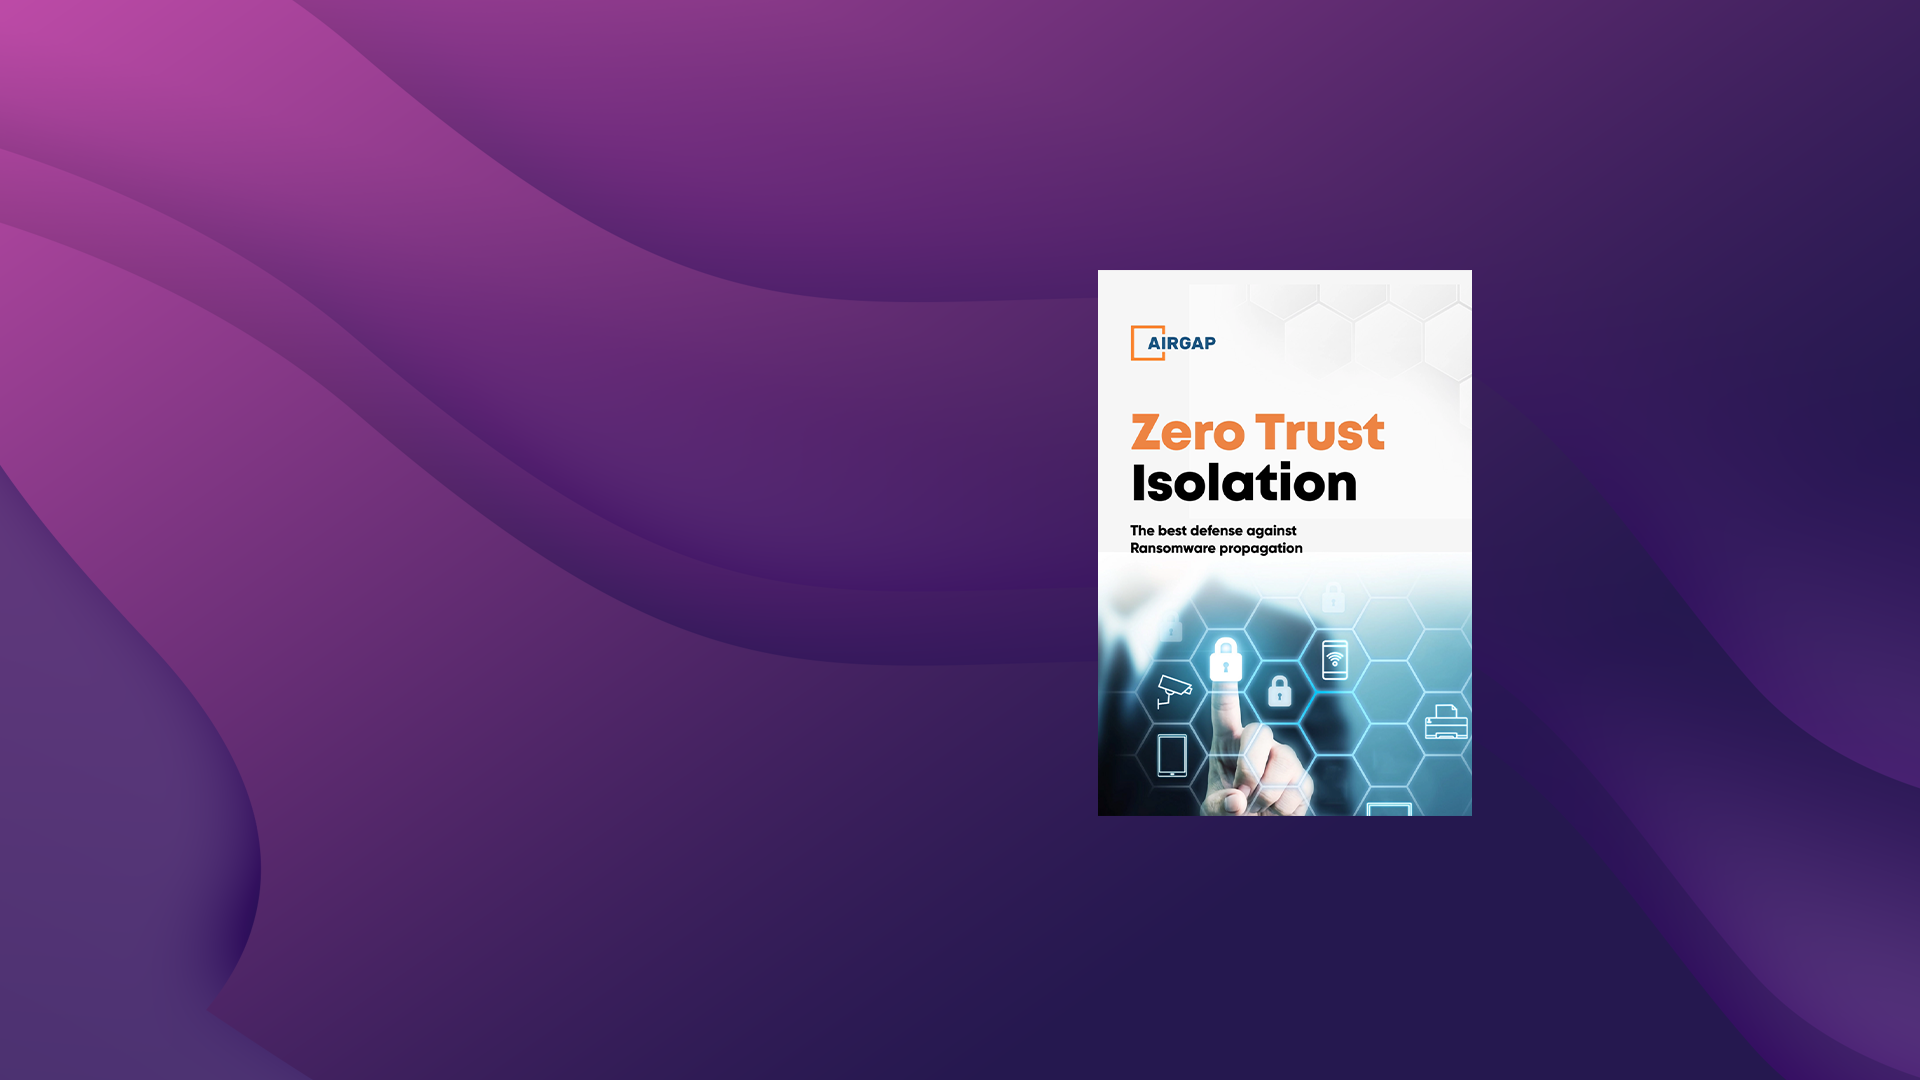 1363: The Zero Trust Isolation Platform that Confines Ransomware to a Single Device